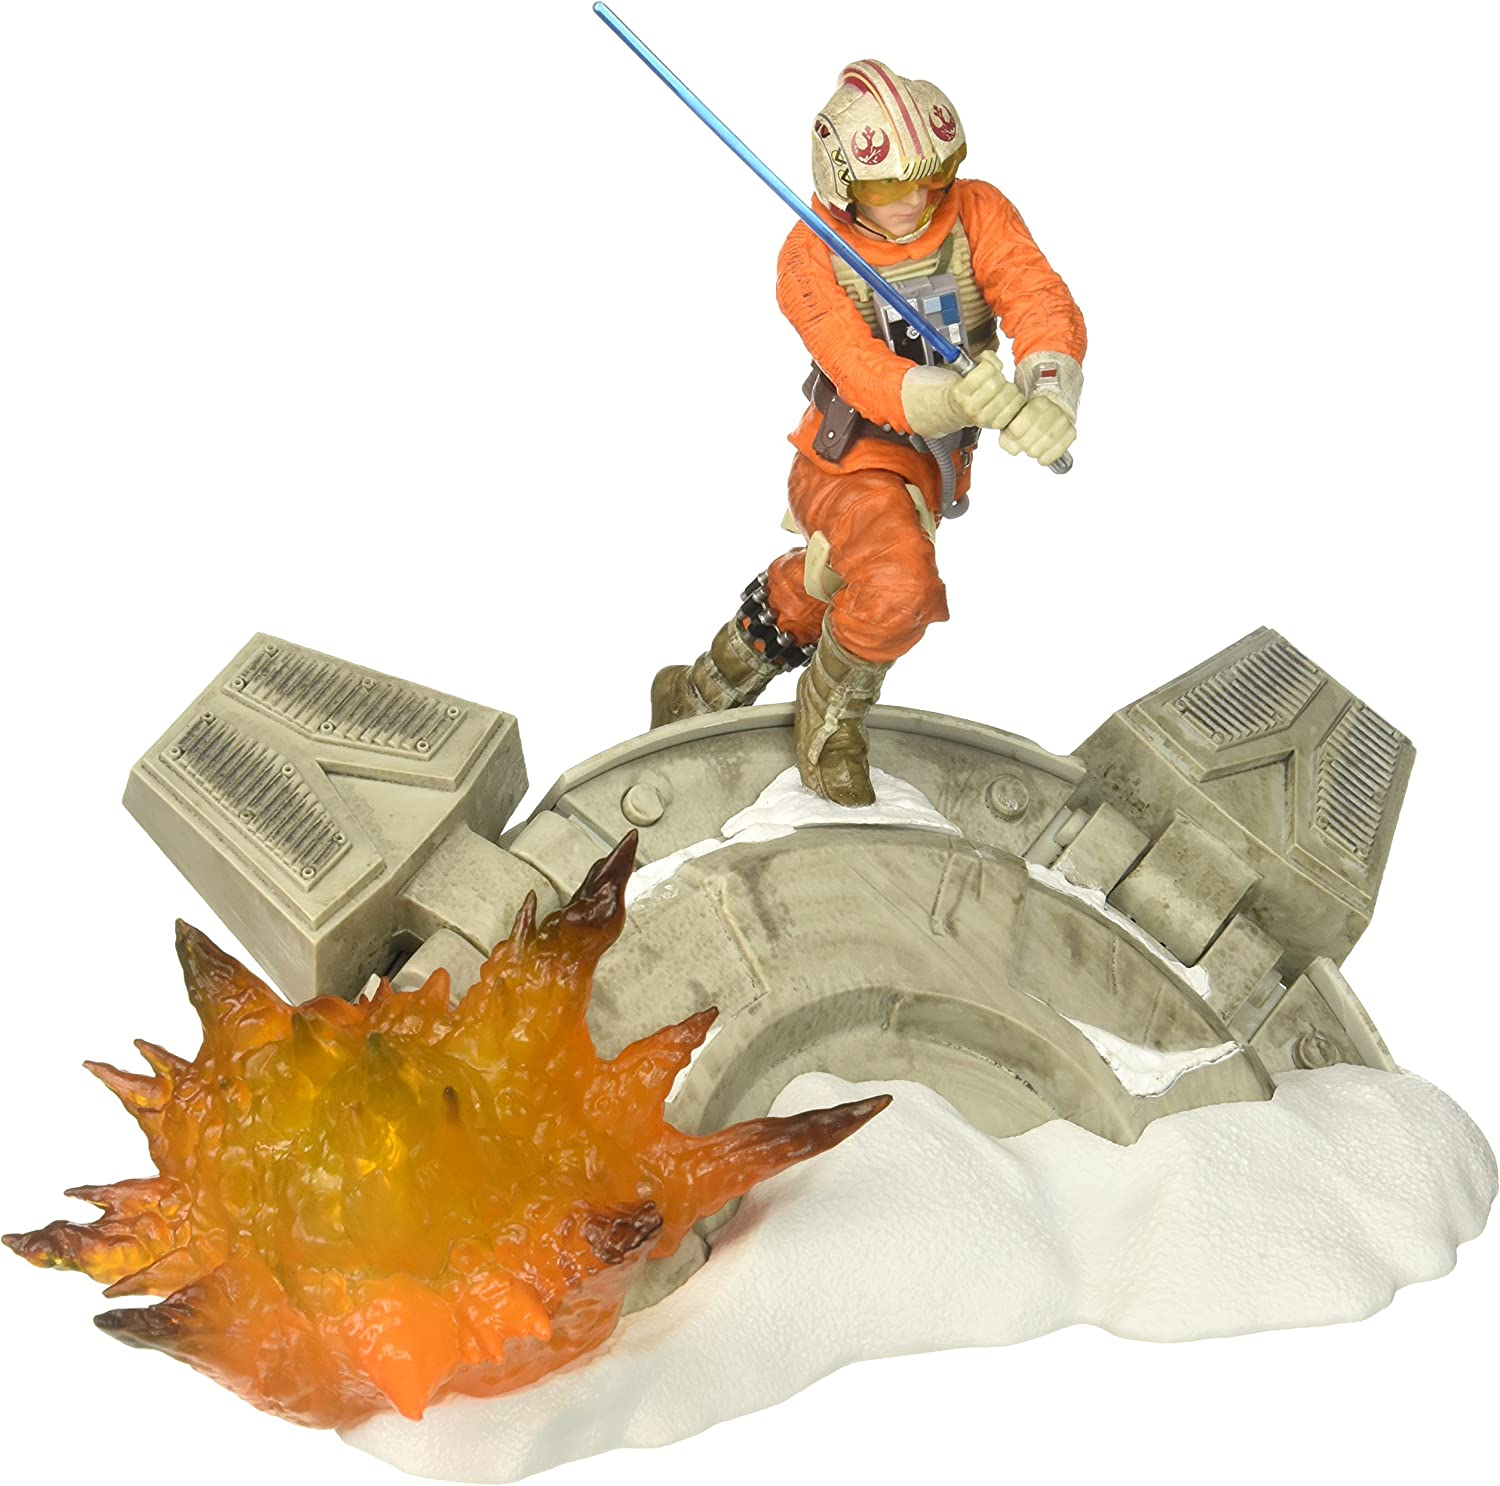 Star Wars Black Series Luke Skywalker Statue Centerpiece - Action Packed Display of a Classic Scene - Light Up Feature - 3 AAA Batteries Not Included - Add More Characters to Build the Scene